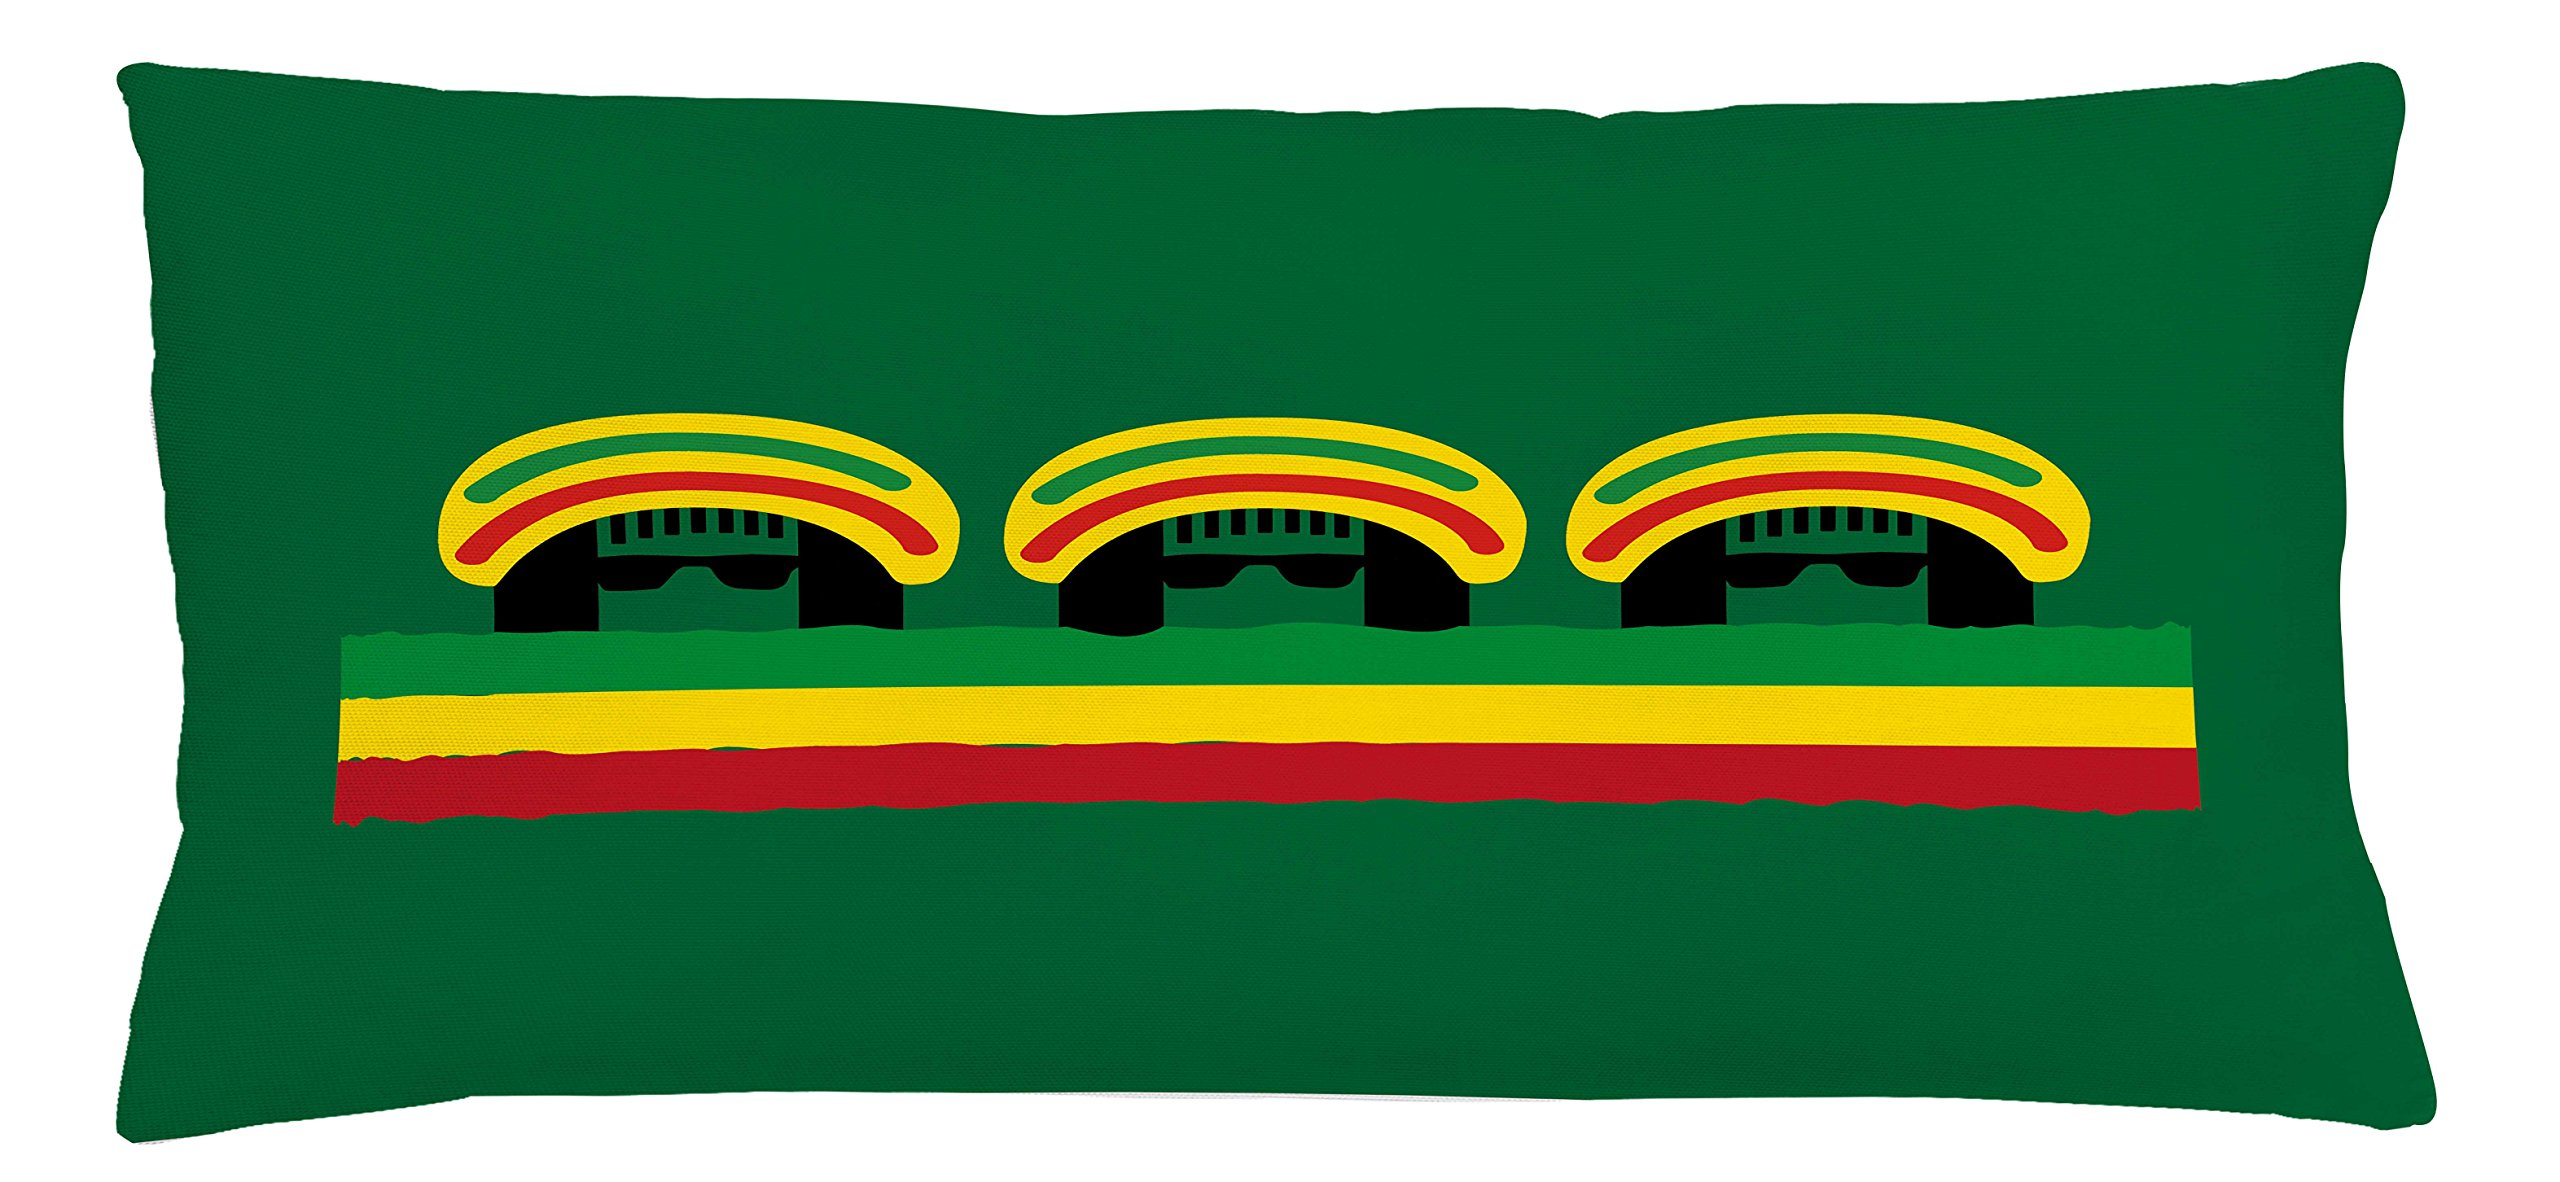 Ambesonne Jamaican Throw Pillow Cushion Cover, Jamaican Reggae Culture Inspired Minimal Head Shapes with Hats Country Flag, Decorative Square Accent Pillow Case, 36 X 16 inches, Green Multicolor